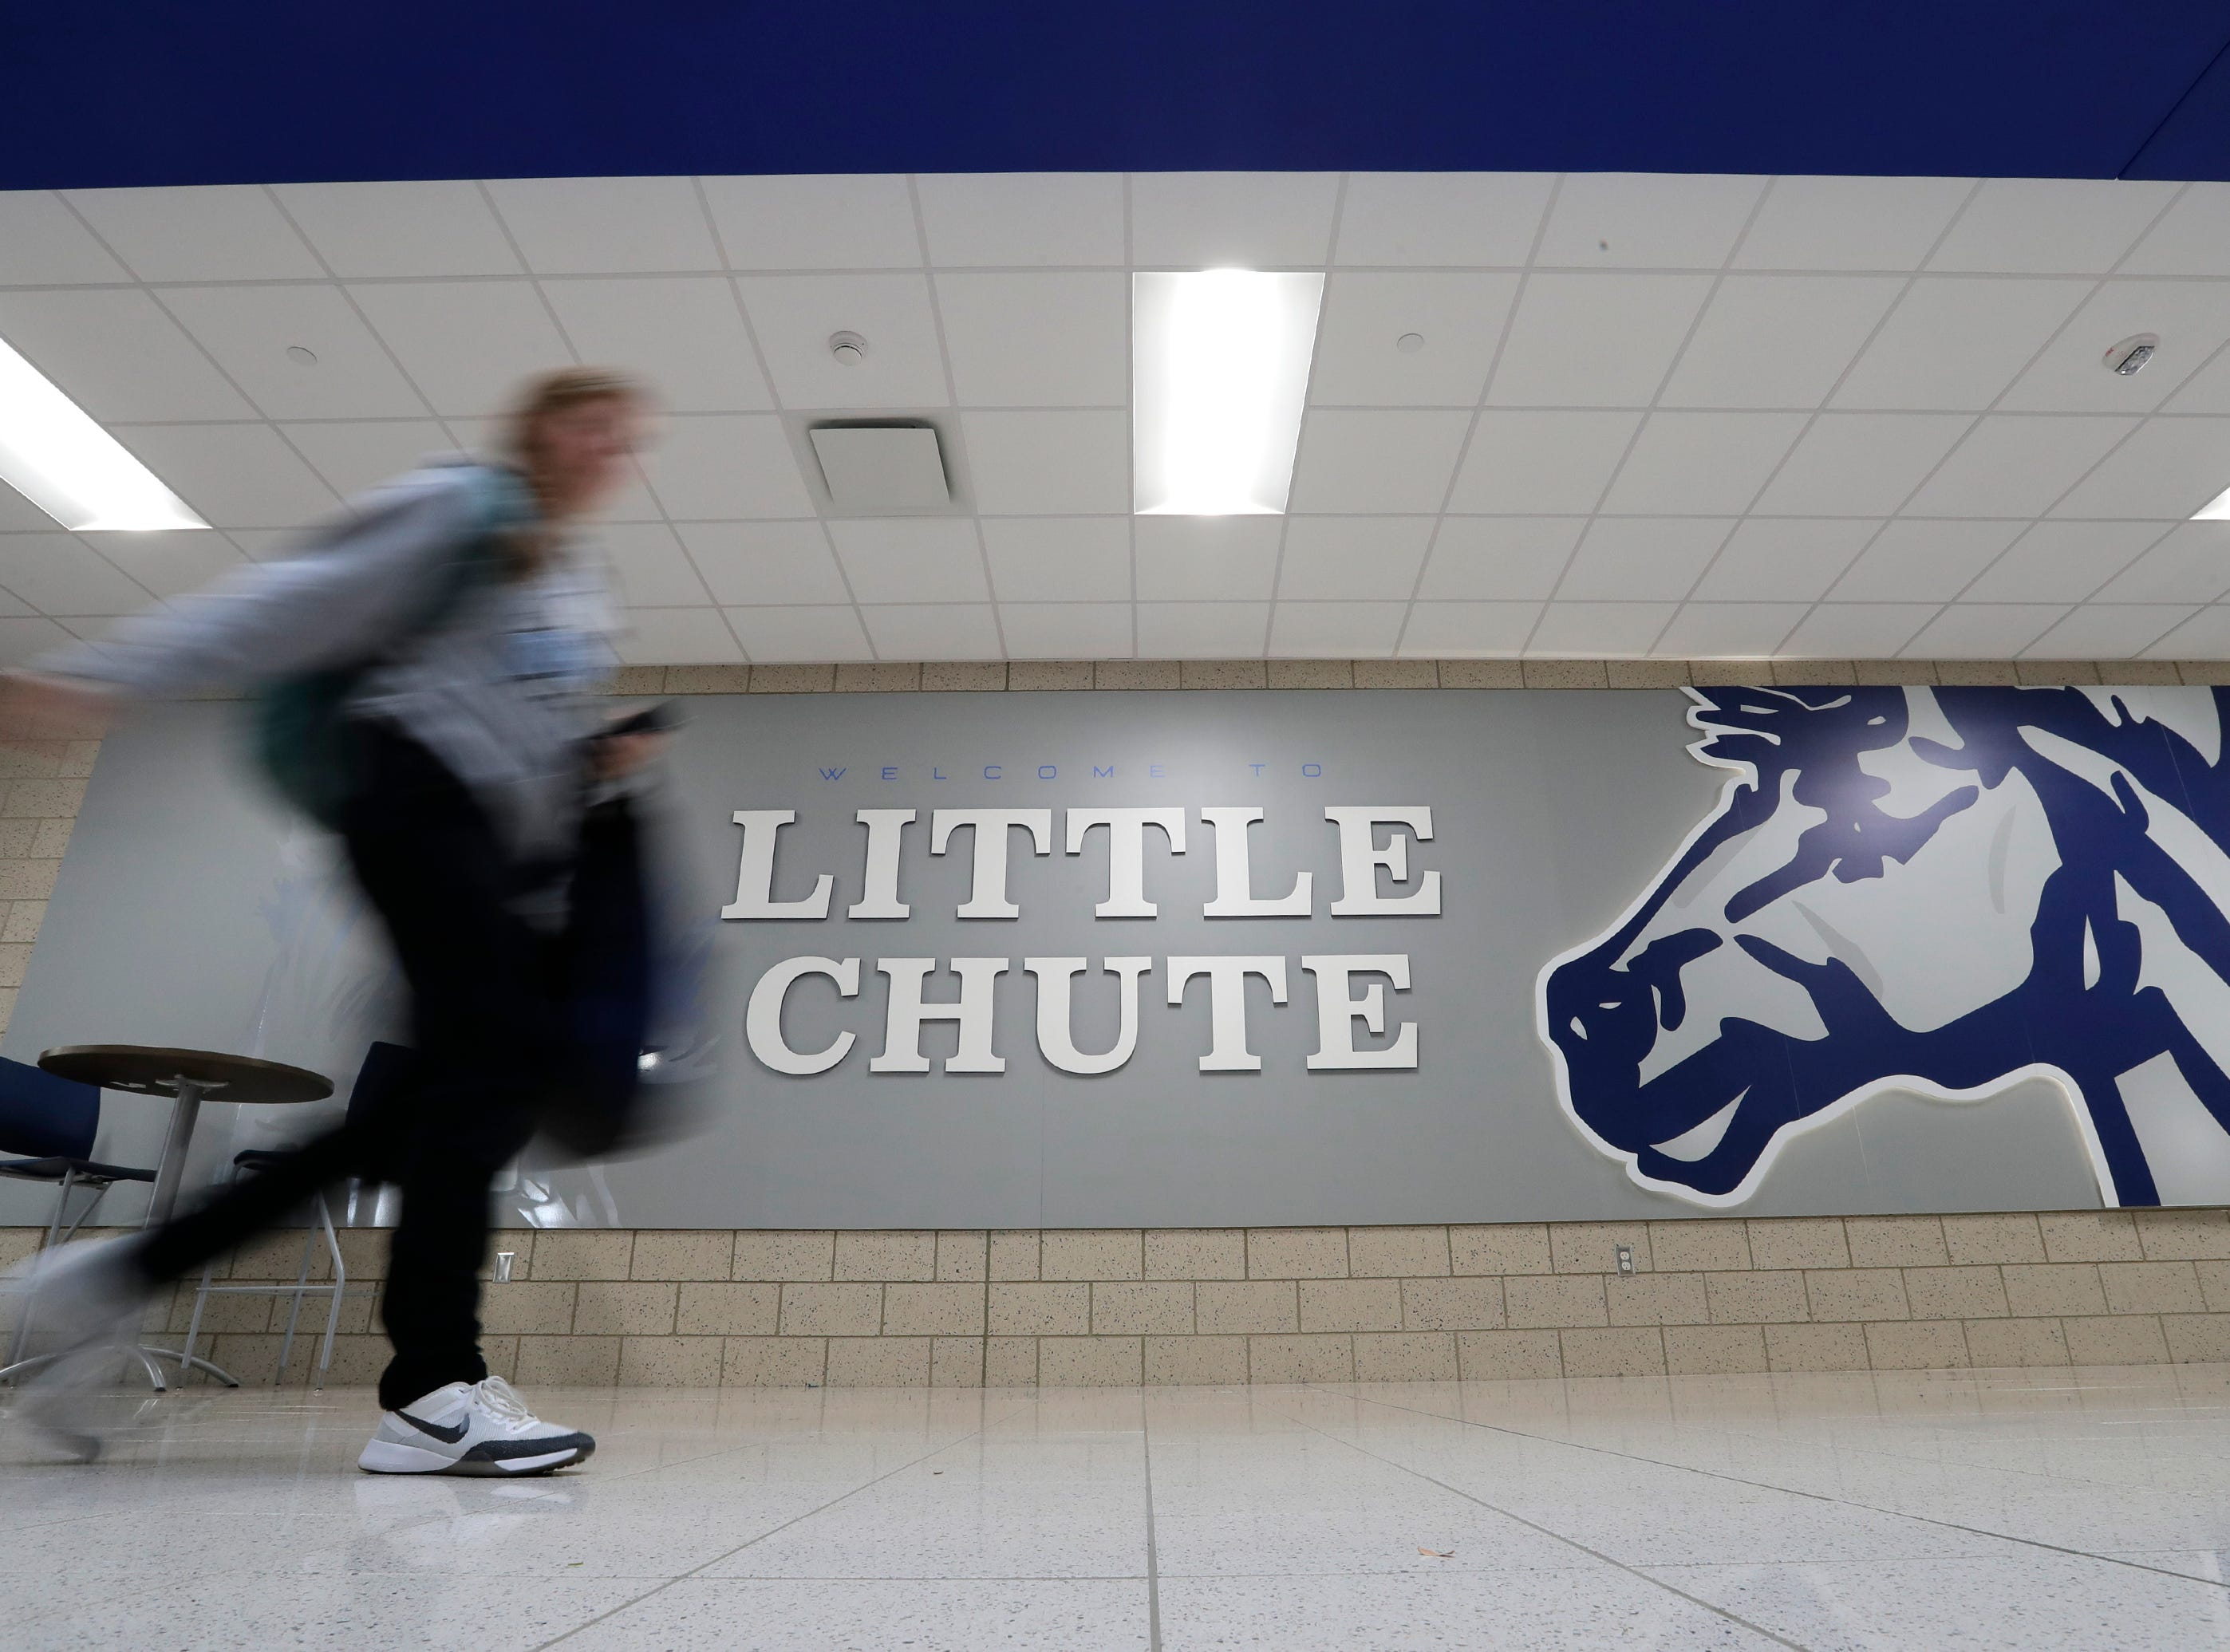 A student walks down the new entrance hallway of Little Chute High School Tuesday, November 6, 2018, in Little Chute, Wis. 